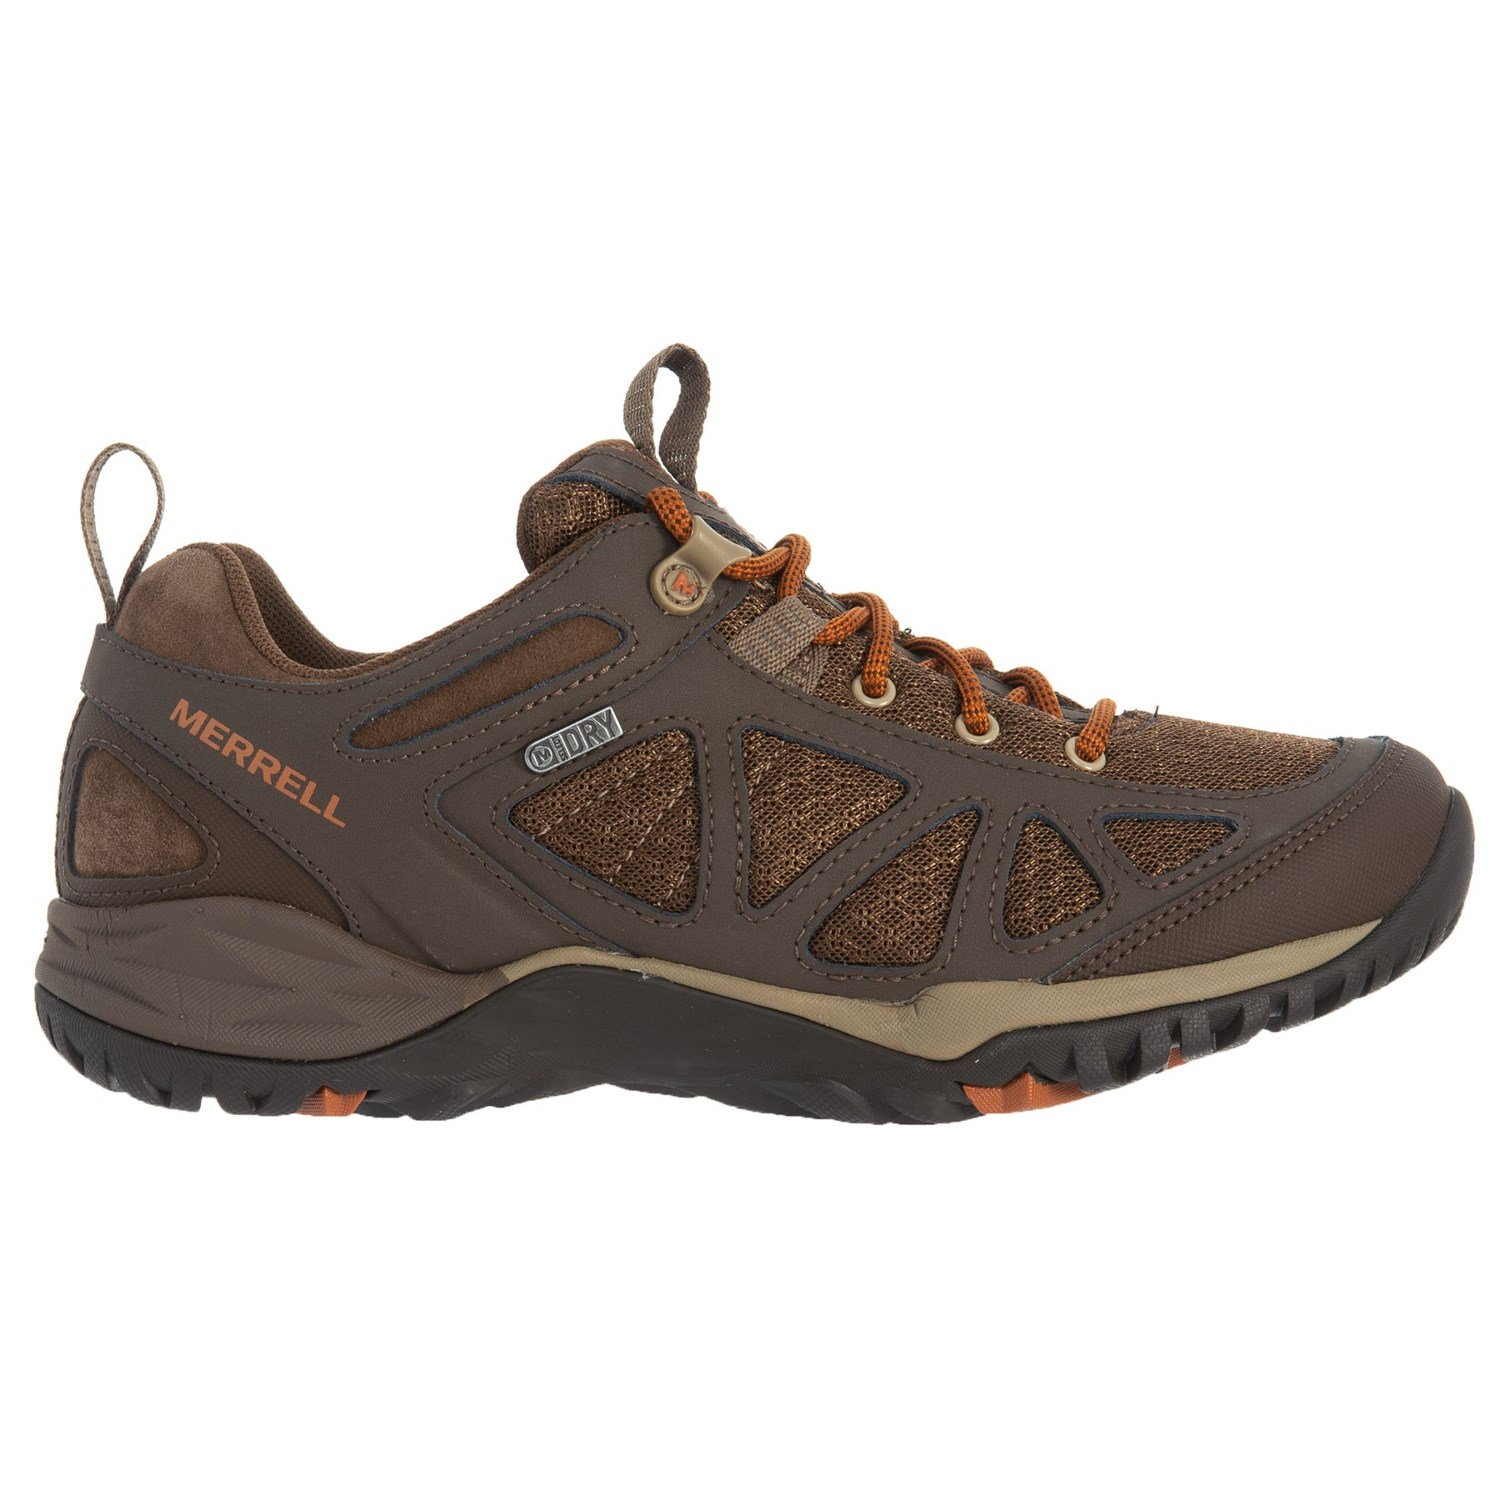 18ae0deee3e7 Merrell Siren Sport Q2 Hiking Shoes - Waterproof (For Women)